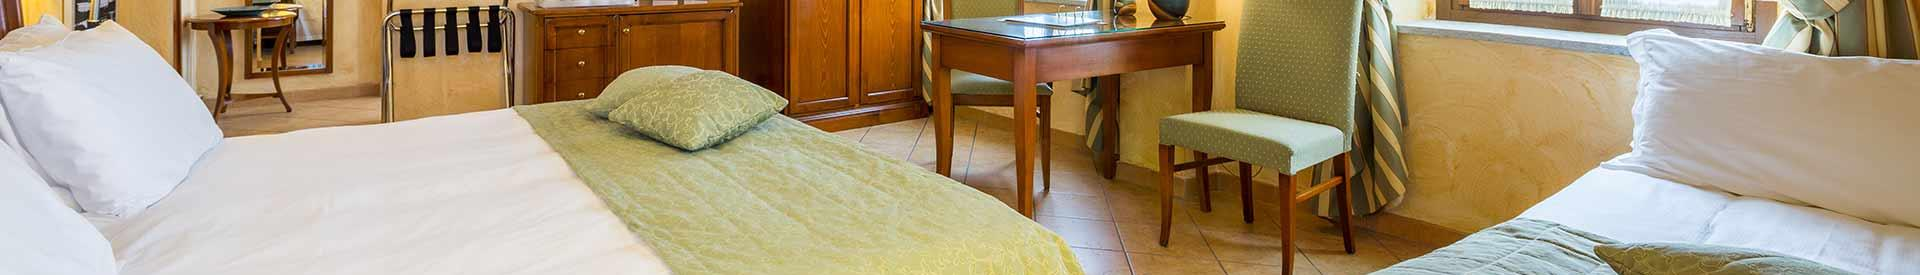 Looking for a hotel for your stay in San Francesco al Campo (TO)? Book/reserve at the Best Western Plus Hotel Le Rondini